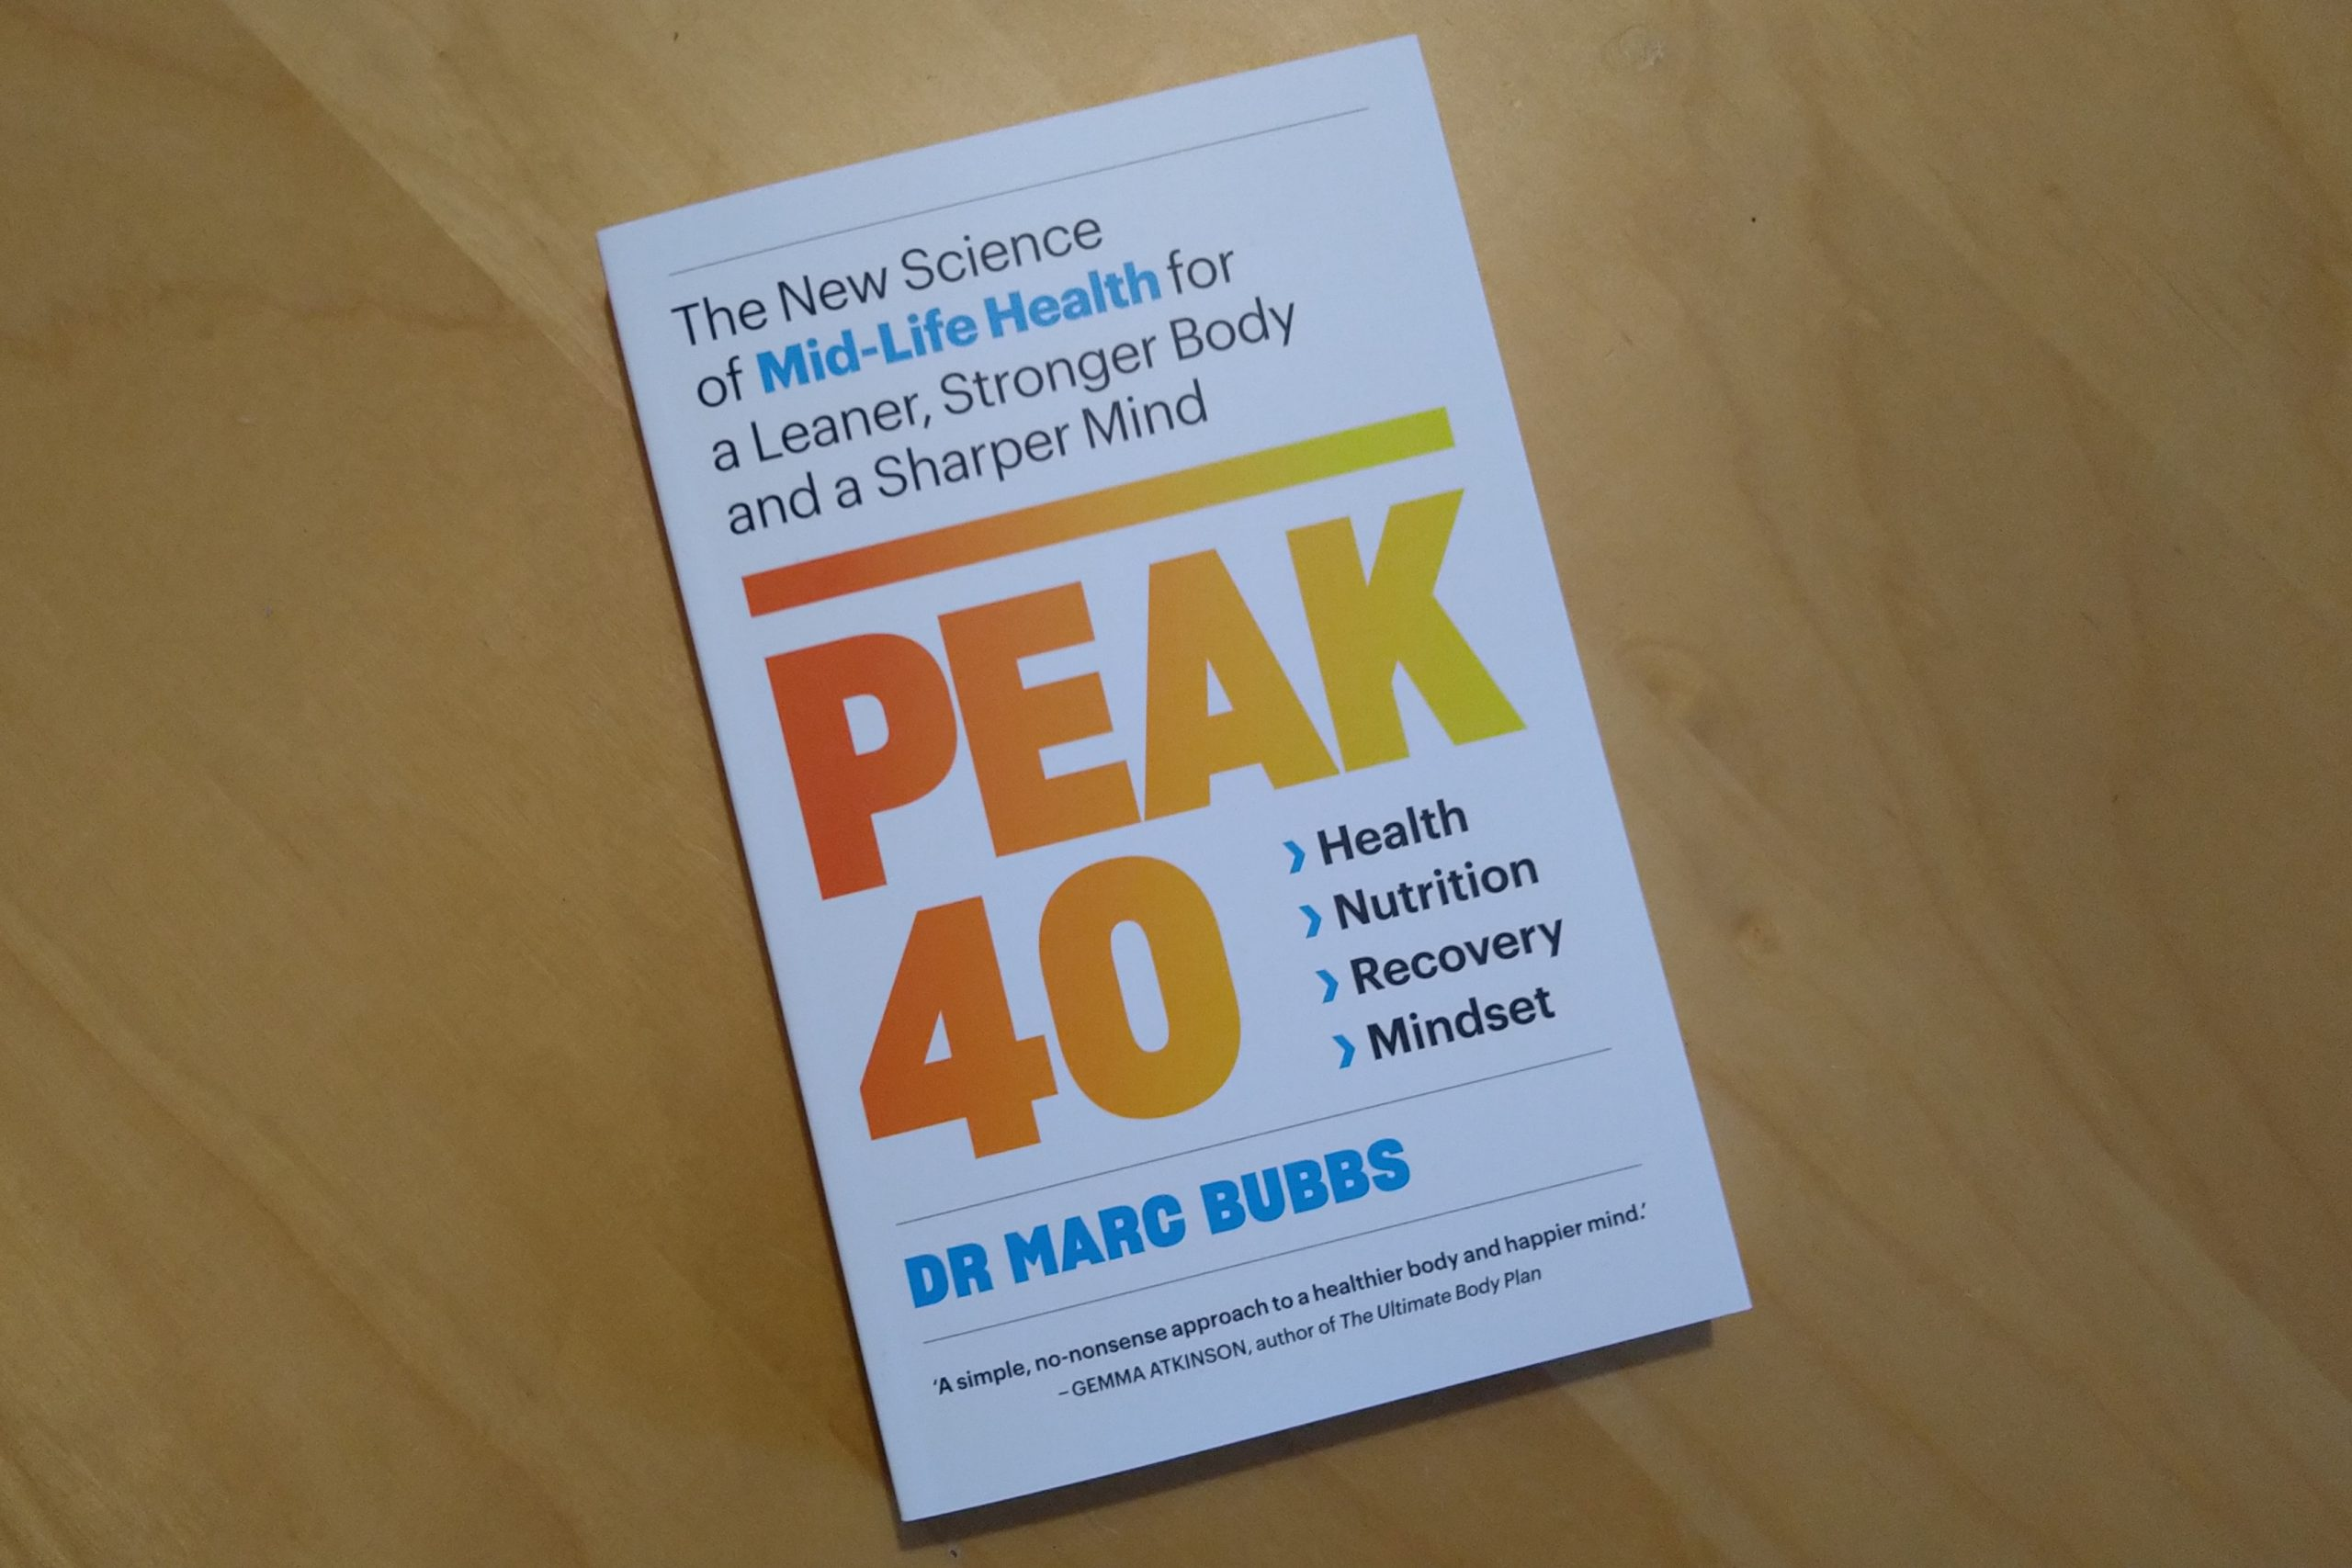 PEAK40 by Dr Marc Bubbs